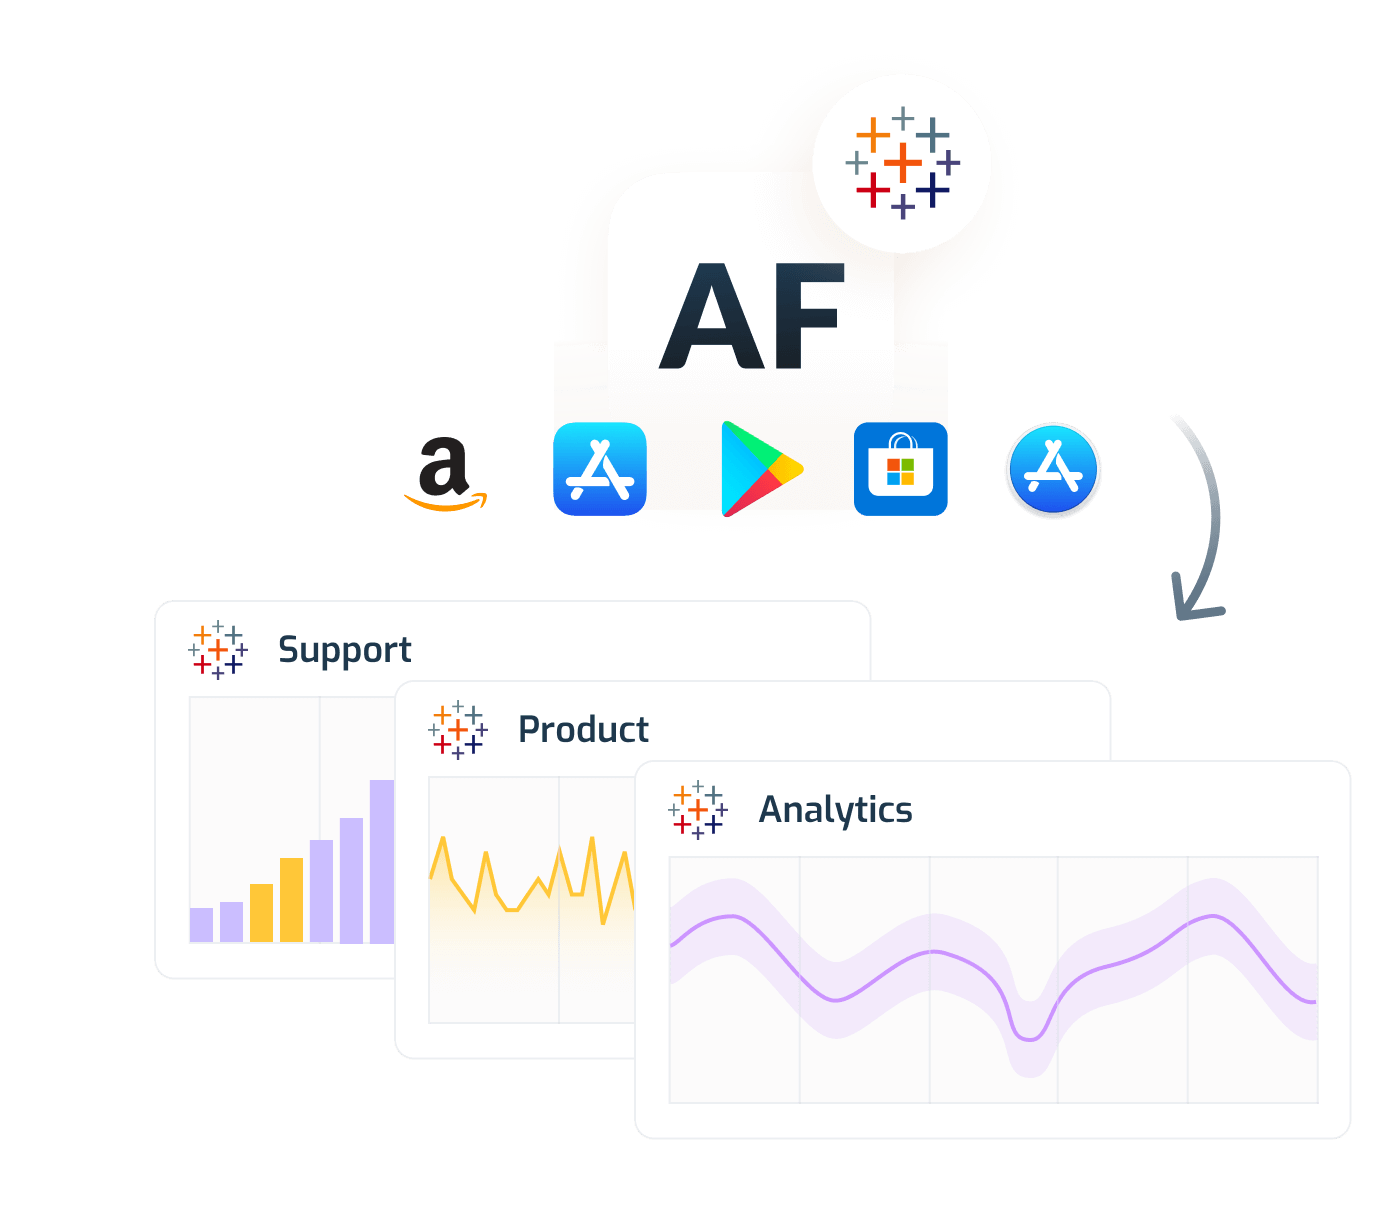 Get app reviews and usage data into Tableau with AppFollow